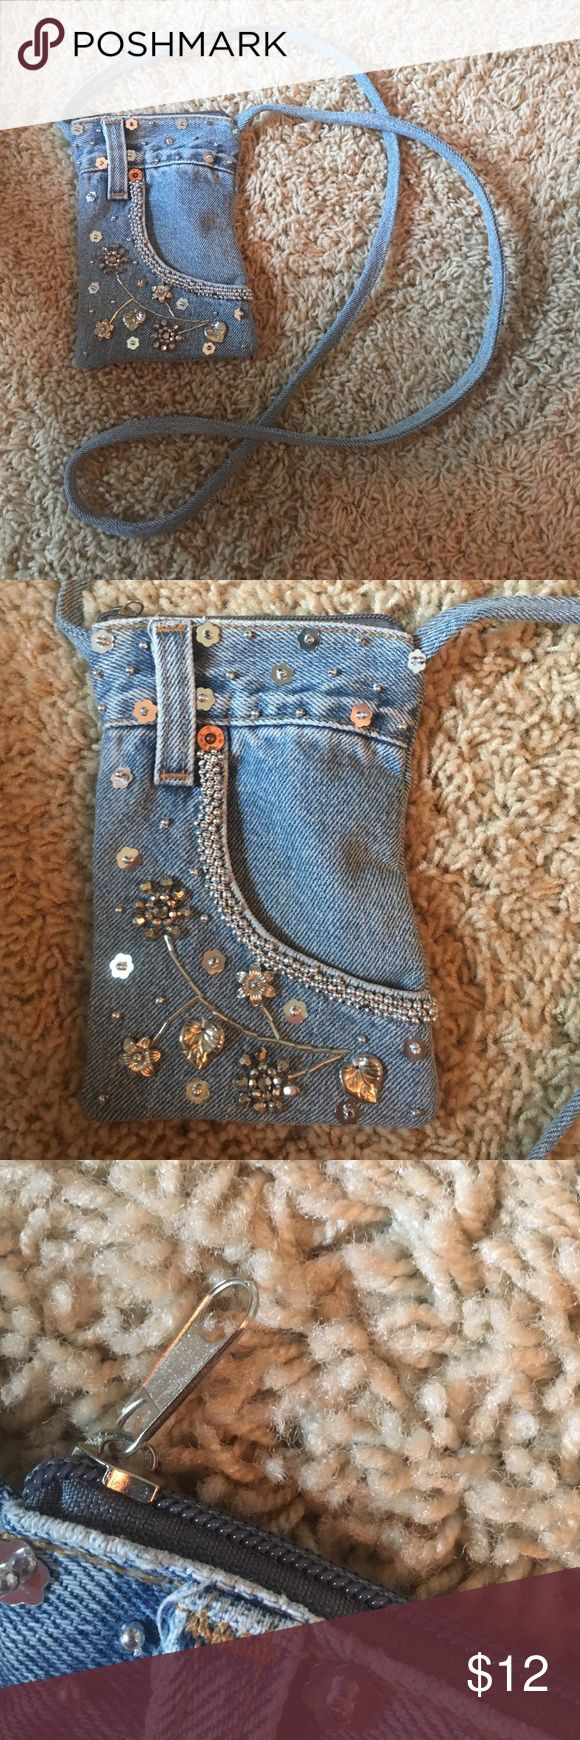 Unique Jean purse Small. Crossbody bag. Made from jeans with flower sequin detail and other various beading. Has one small pocket in the front and zipper at the top Handmade Bags Crossbody Bags